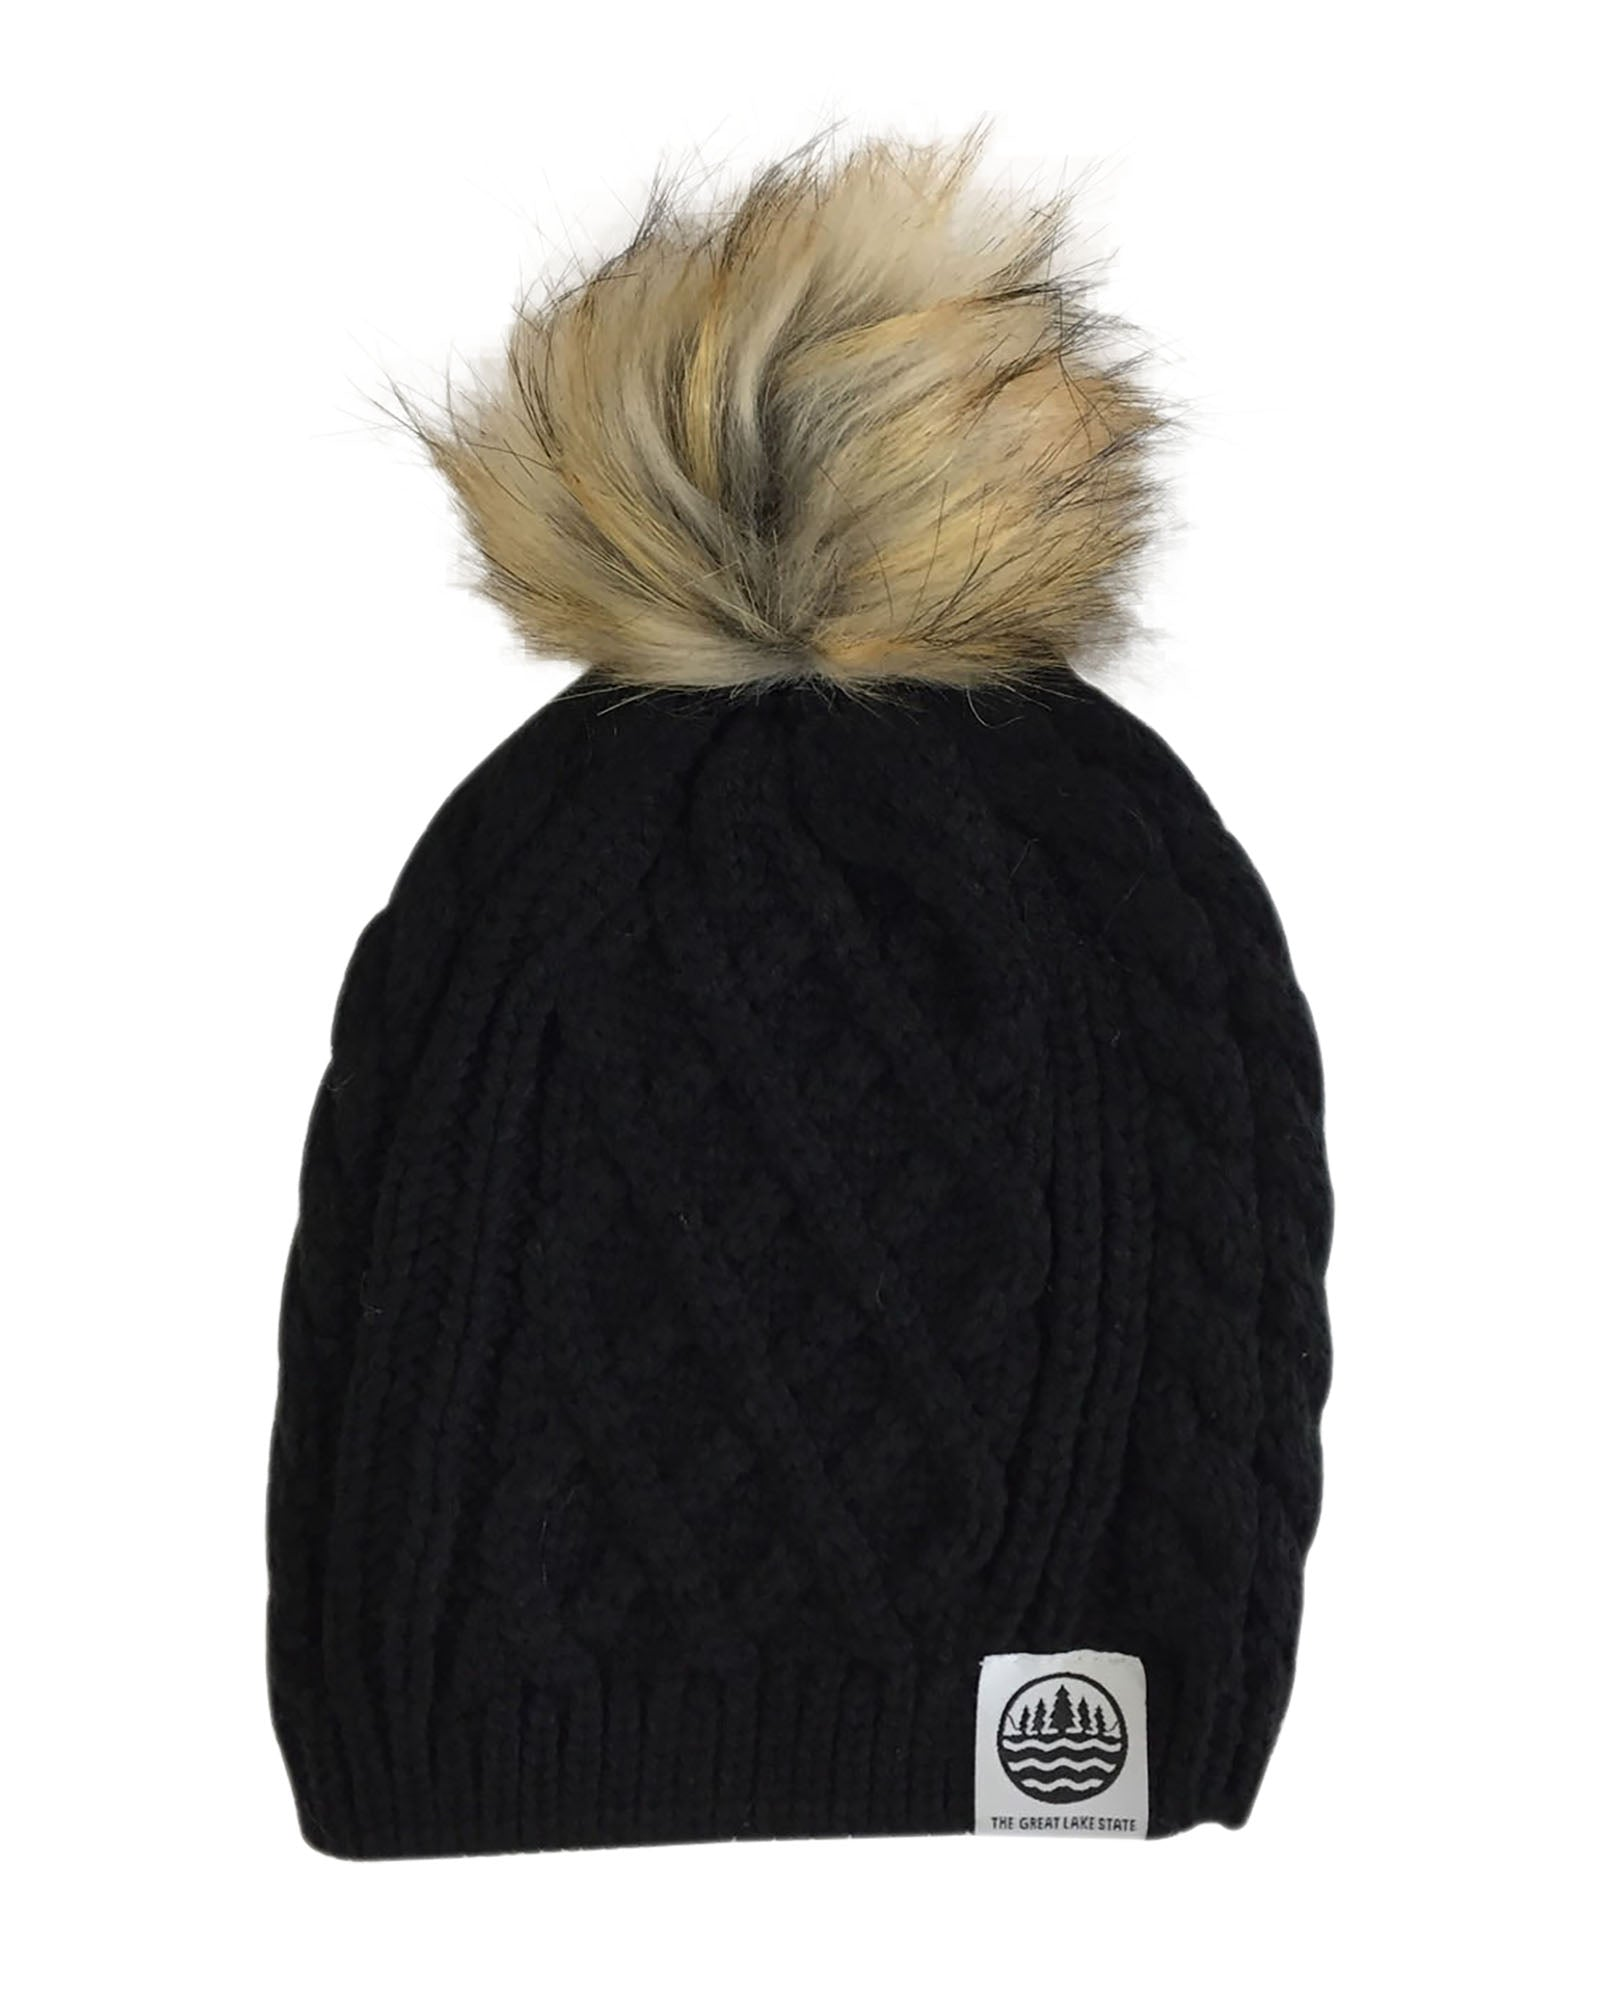 55c4e661321 The Great Lakes State Knit Cable Beanie with Faux Fur Pom